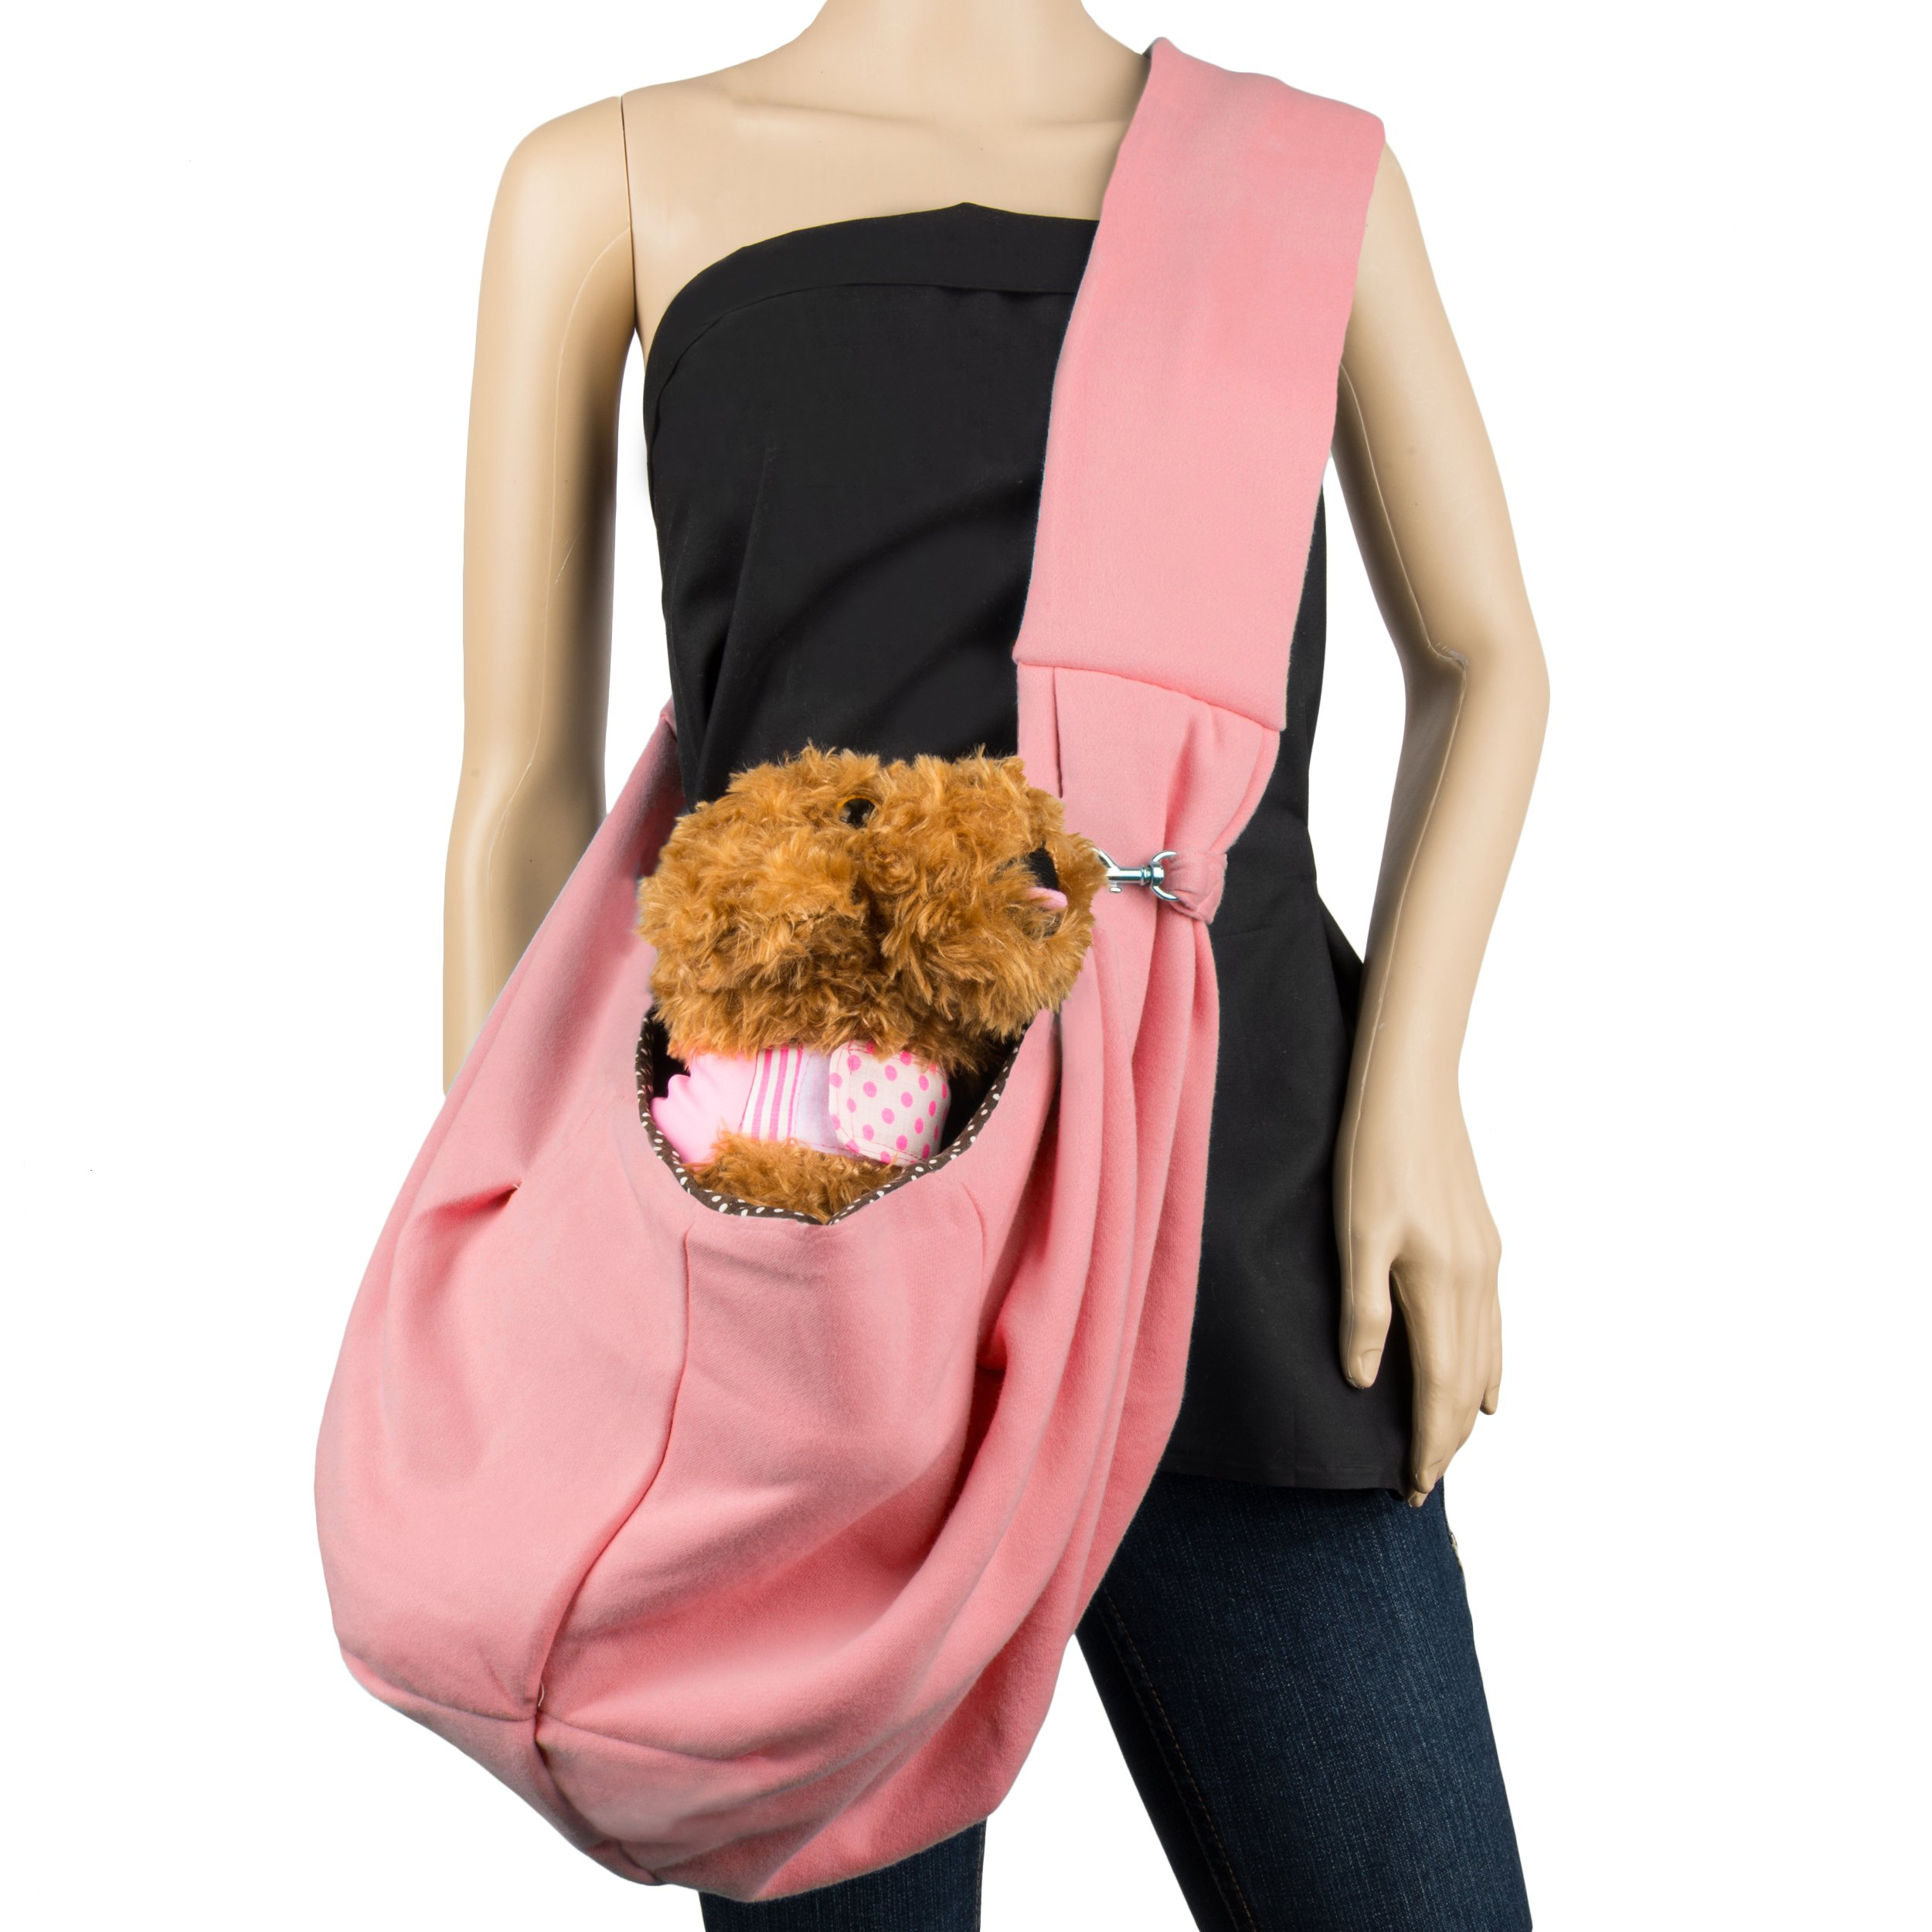 Cue Cue Pet's 100% Plush Cotton Reversible Pet Sling Carrier [Bubble Gum Pink] Suitable for Small to Medium Sized Dogs, Cats, Rabbits, Pet's